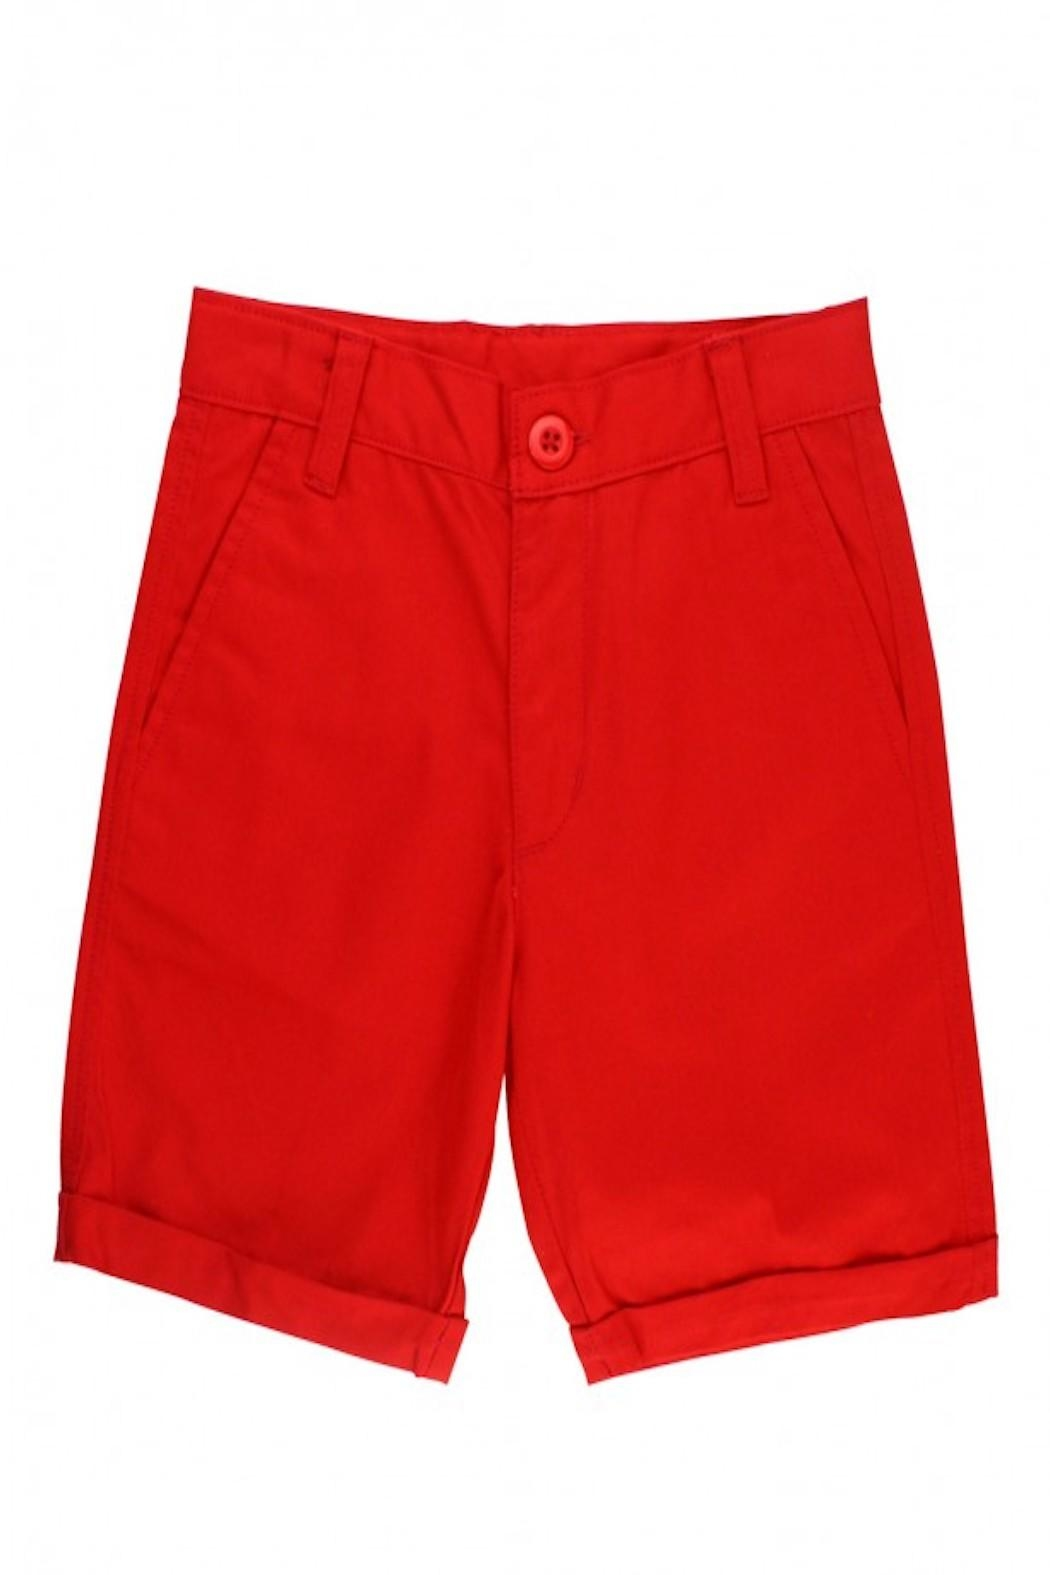 RuggedButts Red Chino Shorts - Front Full Image